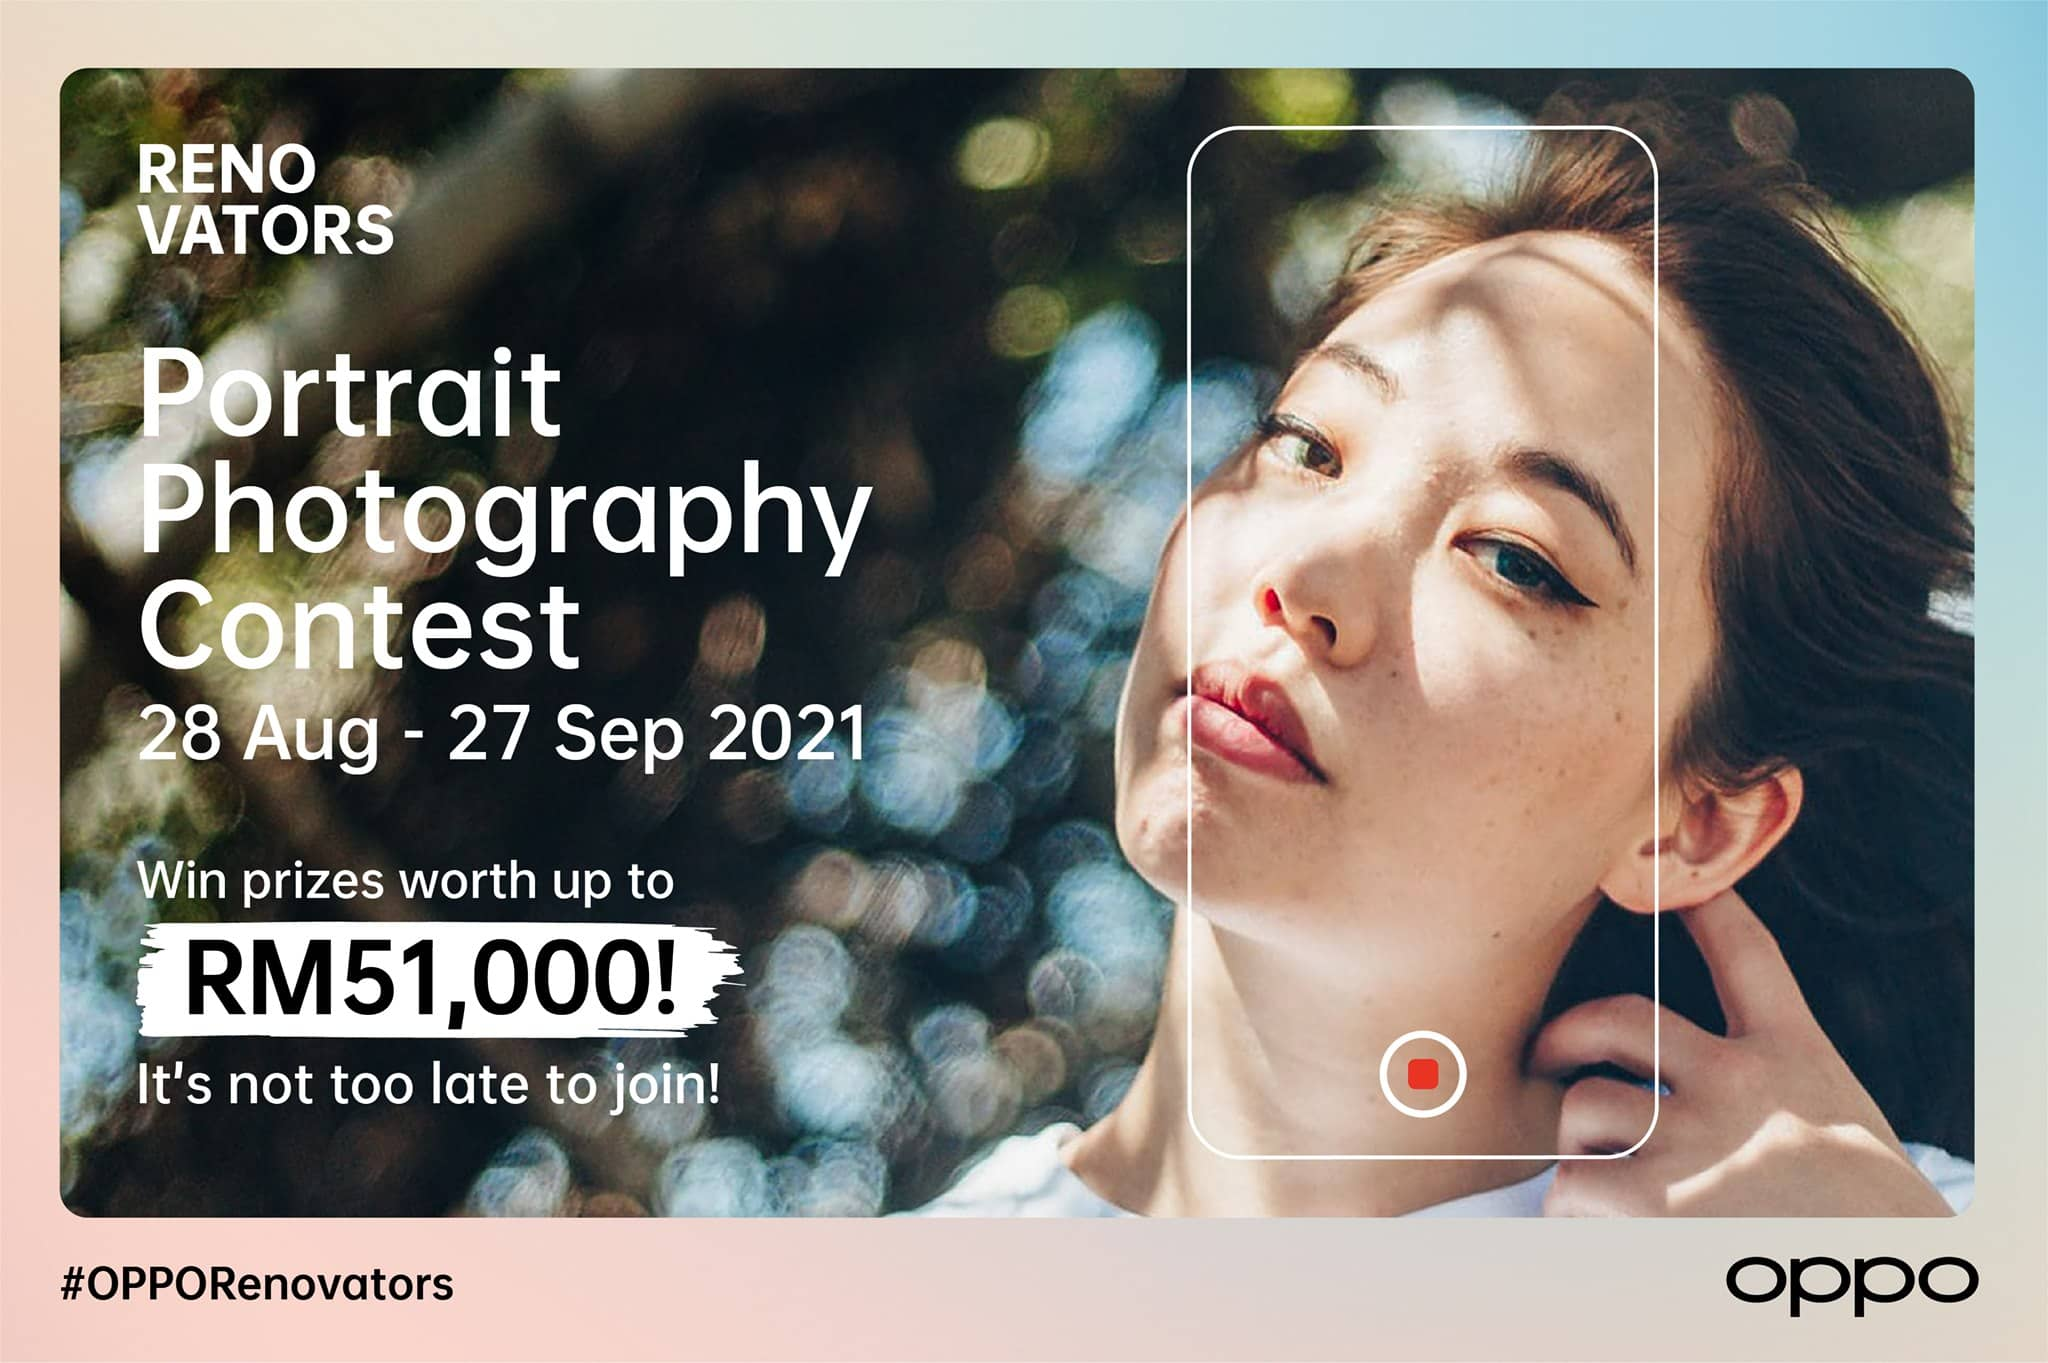 OPPO RENOVATORS Portrait Photography Contest: Last Chance to Win Up to RM 7,000 Cash Prize